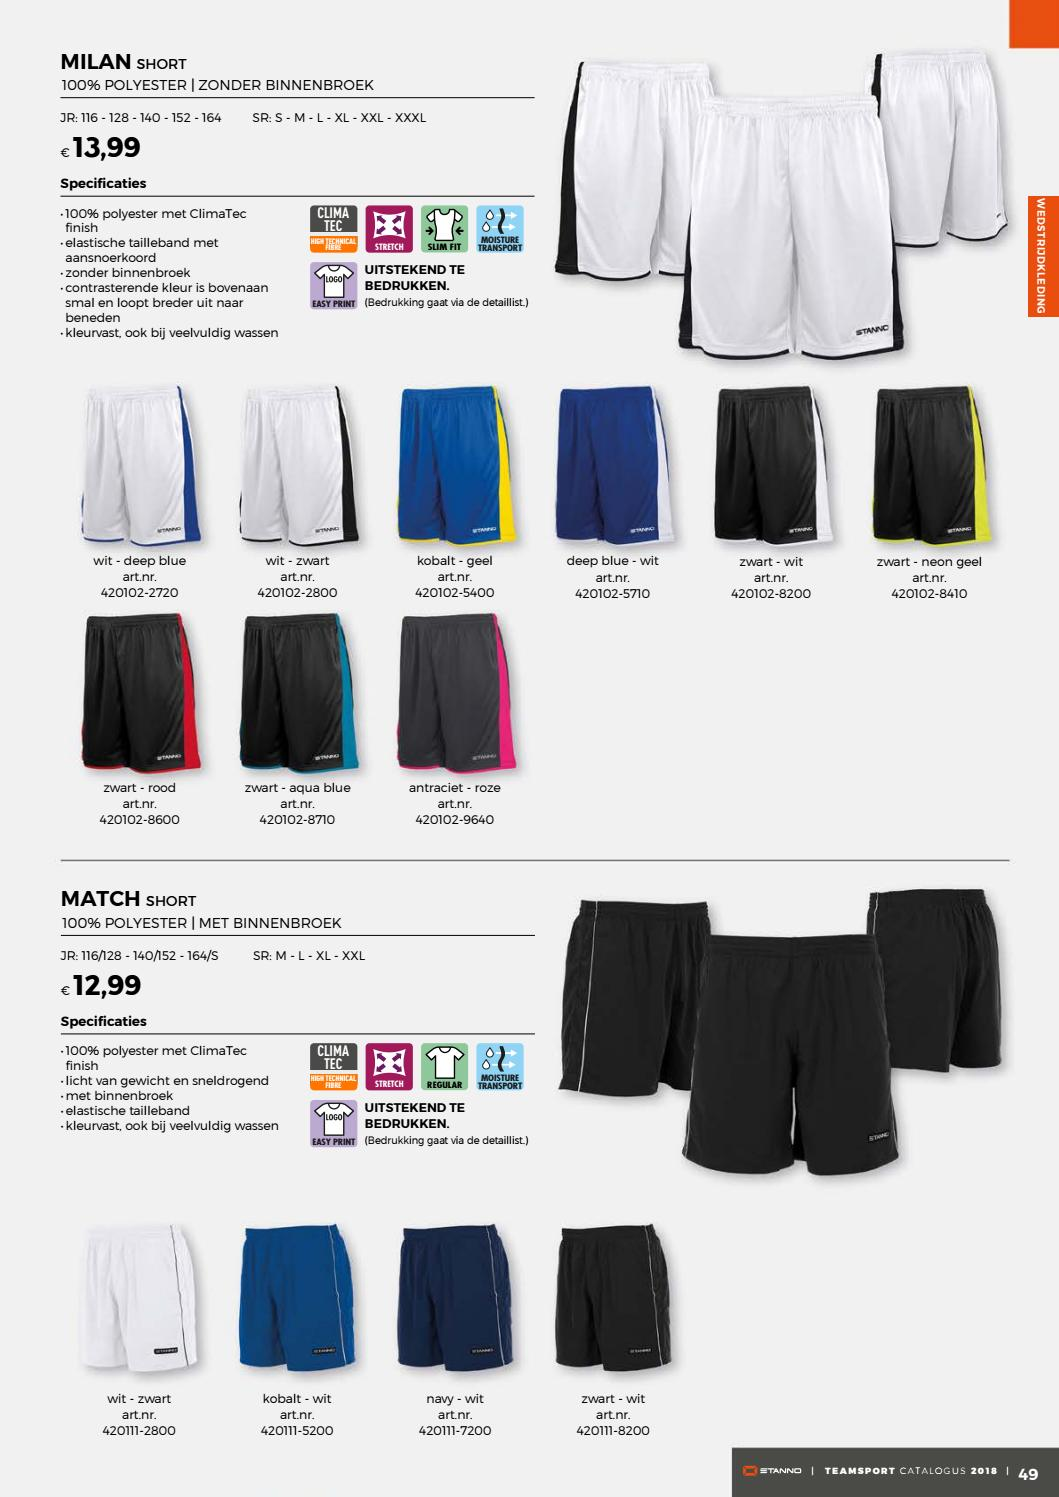 100 Polyester Wassen Stanno Teamsports Catalogue 2018 Nl By Deventrade Bv Issuu